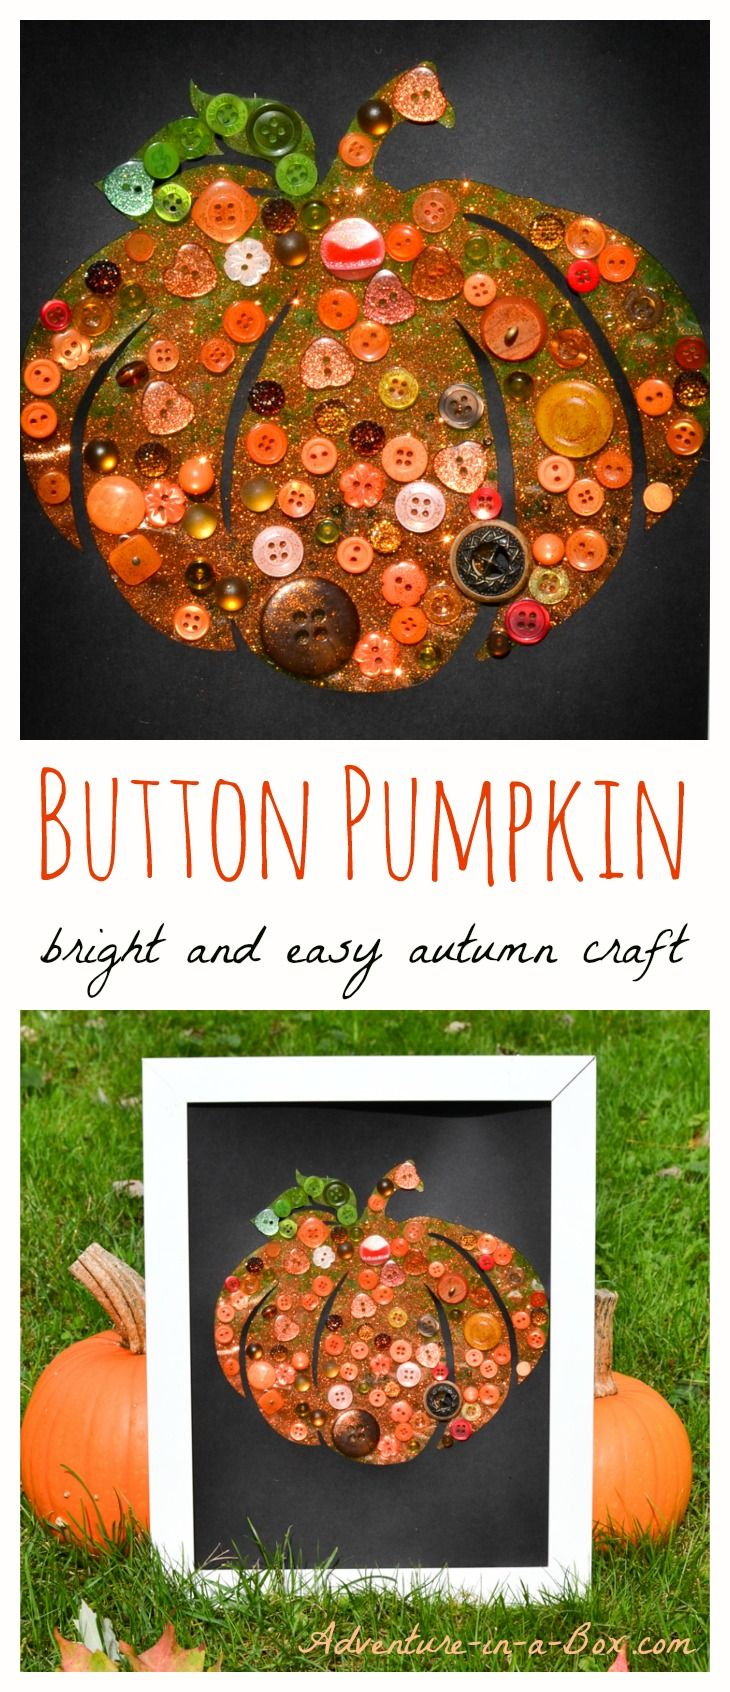 Button Pumpkin: Easy Autumn Craft